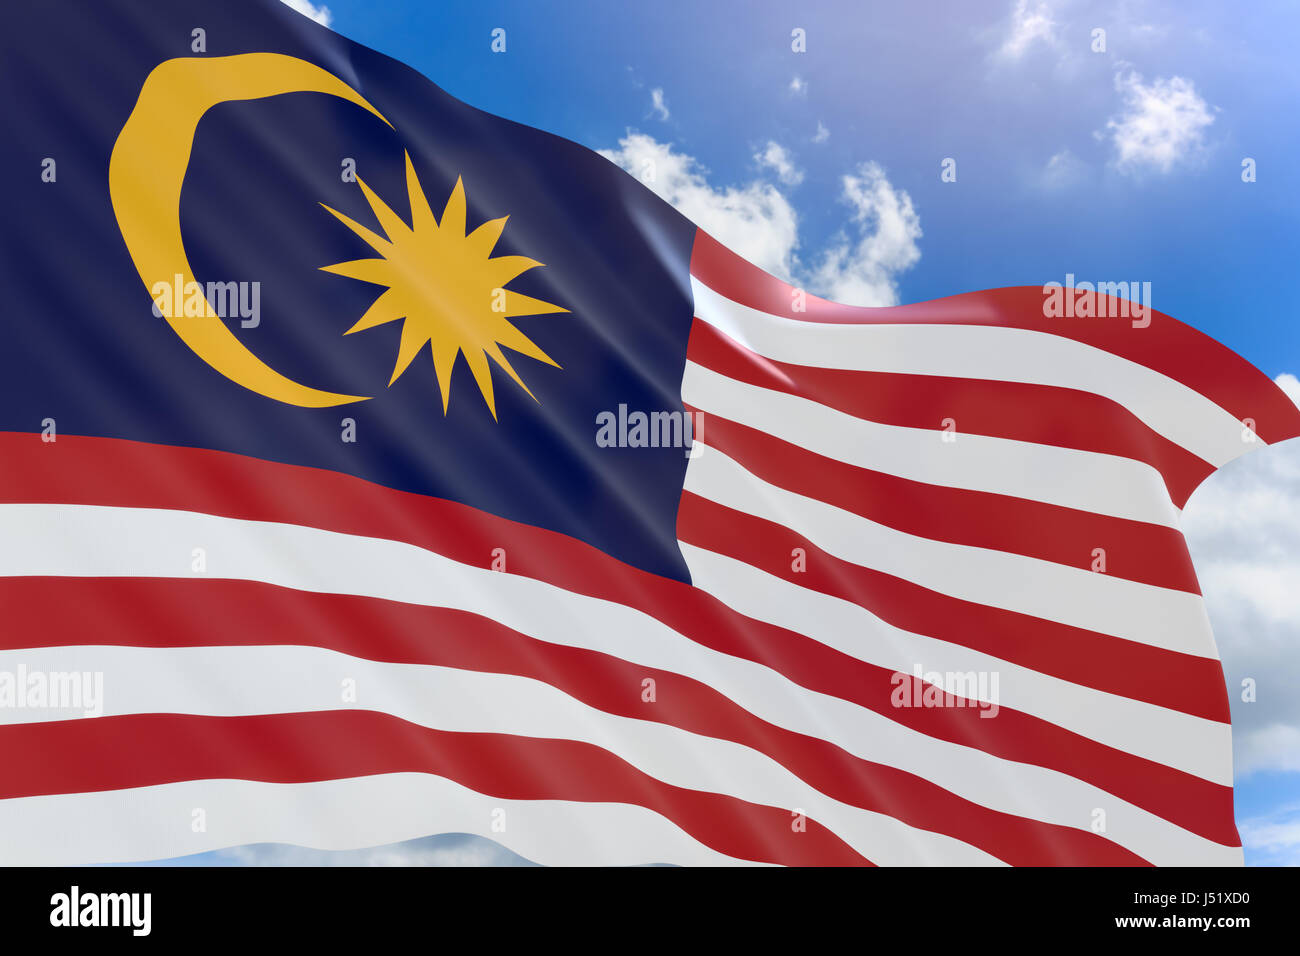 3d rendering of malaysia flag waving on blue sky background hari stock photo alamy https www alamy com stock photo 3d rendering of malaysia flag waving on blue sky background hari merdeka 140798924 html